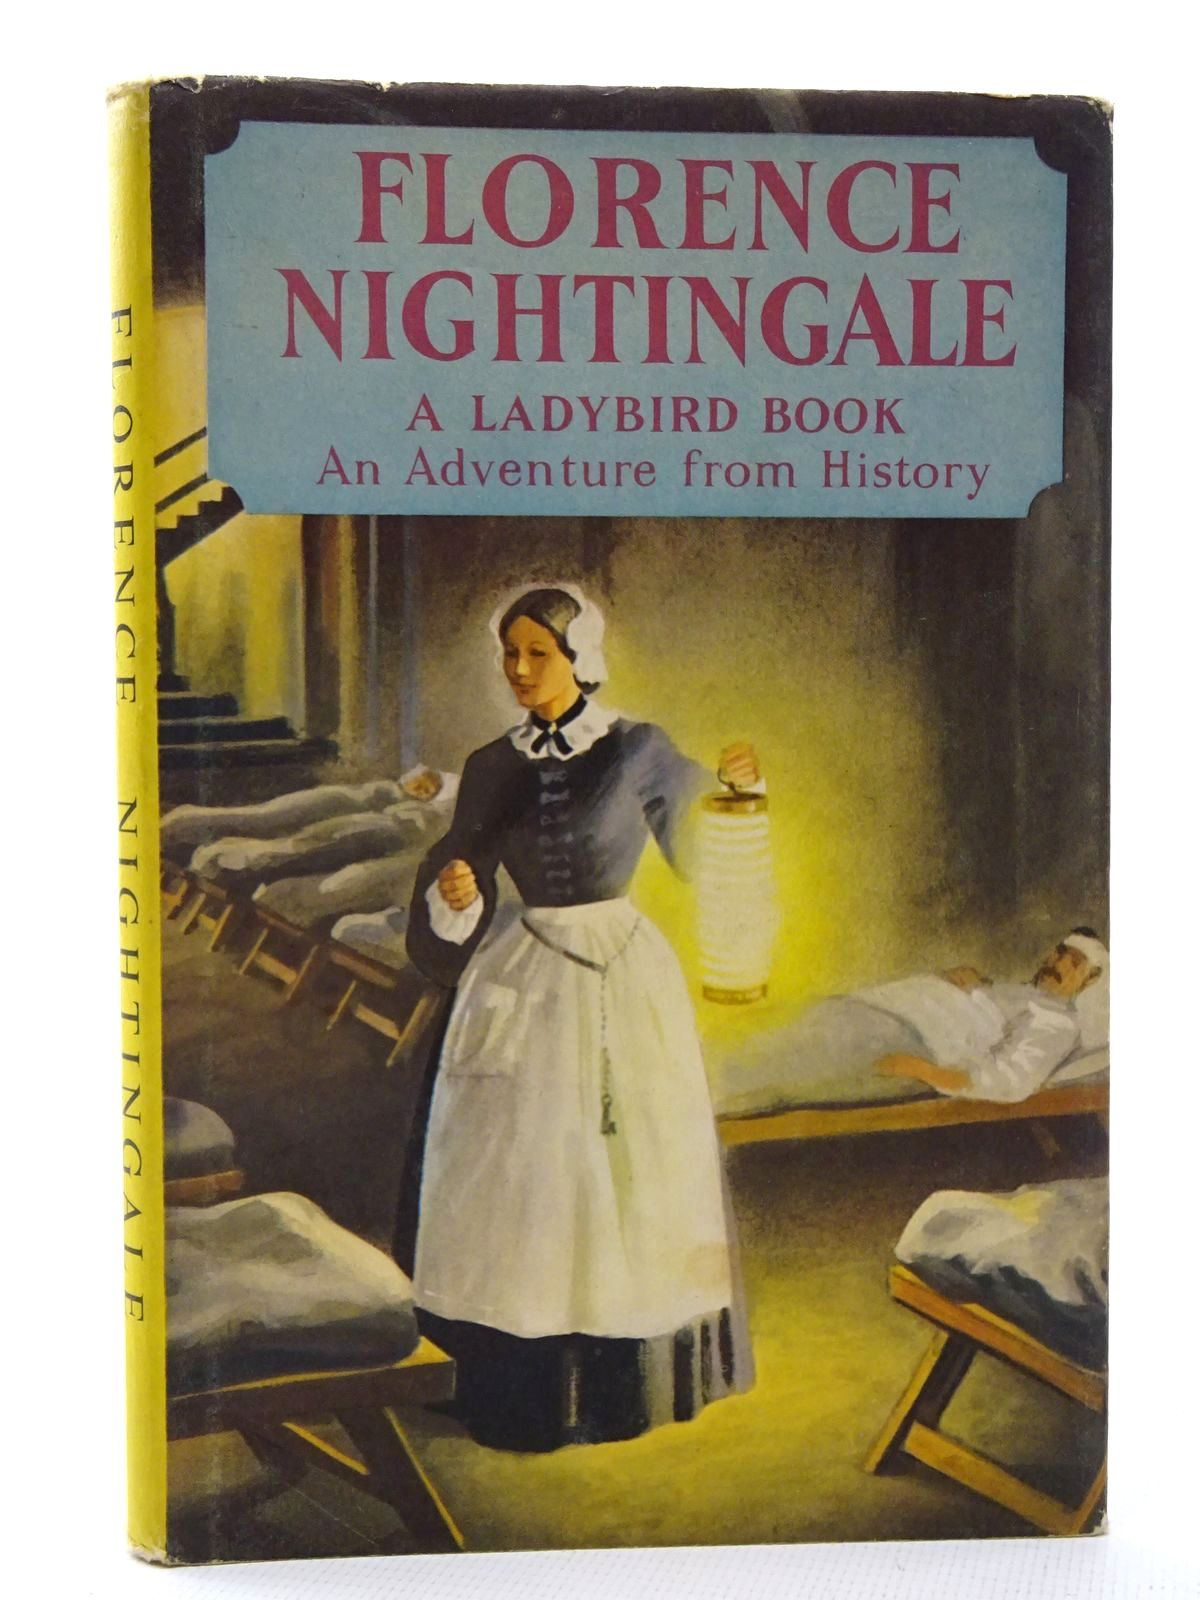 Photo of FLORENCE NIGHTINGALE written by Peach, L. Du Garde illustrated by Kenney, John published by Wills & Hepworth Ltd. (STOCK CODE: 2124343)  for sale by Stella & Rose's Books